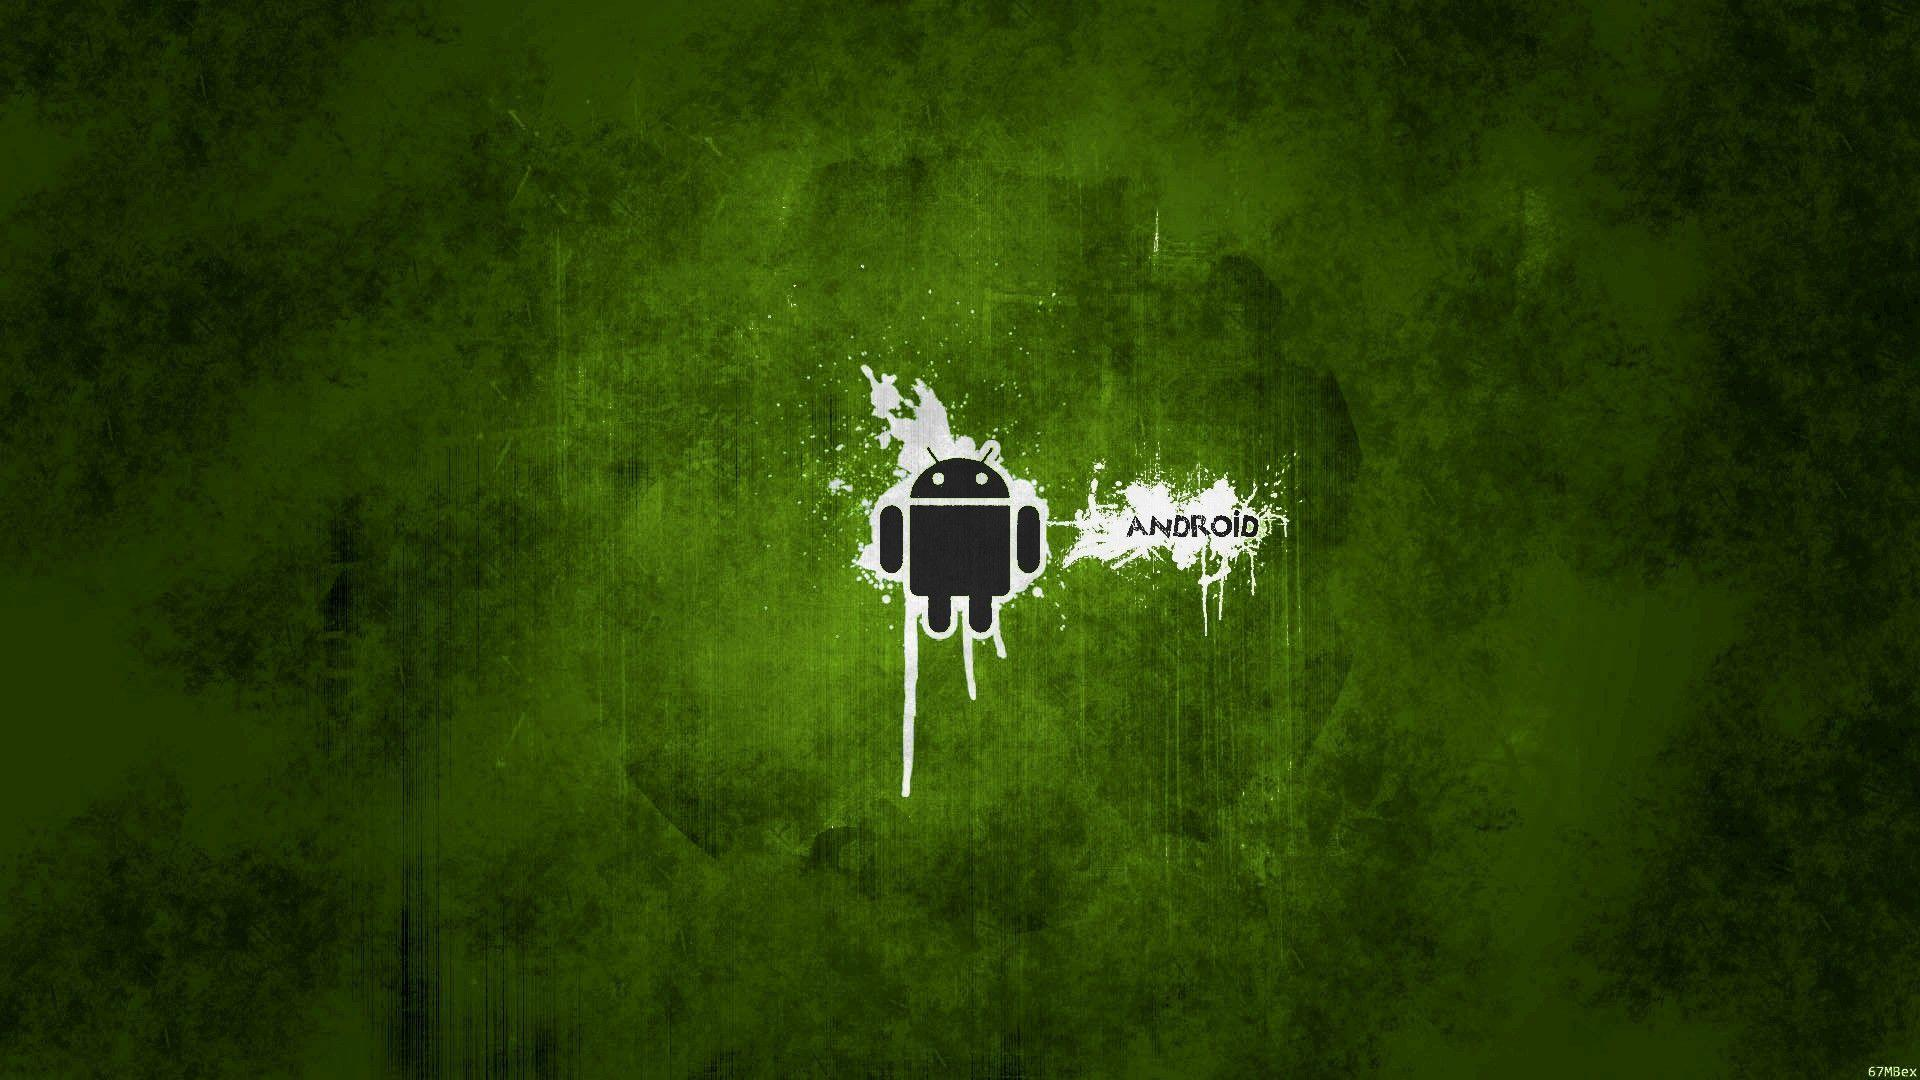 Mind Blowing Android Logo Free Desktop Hd Wallpapers 1920x1200PX